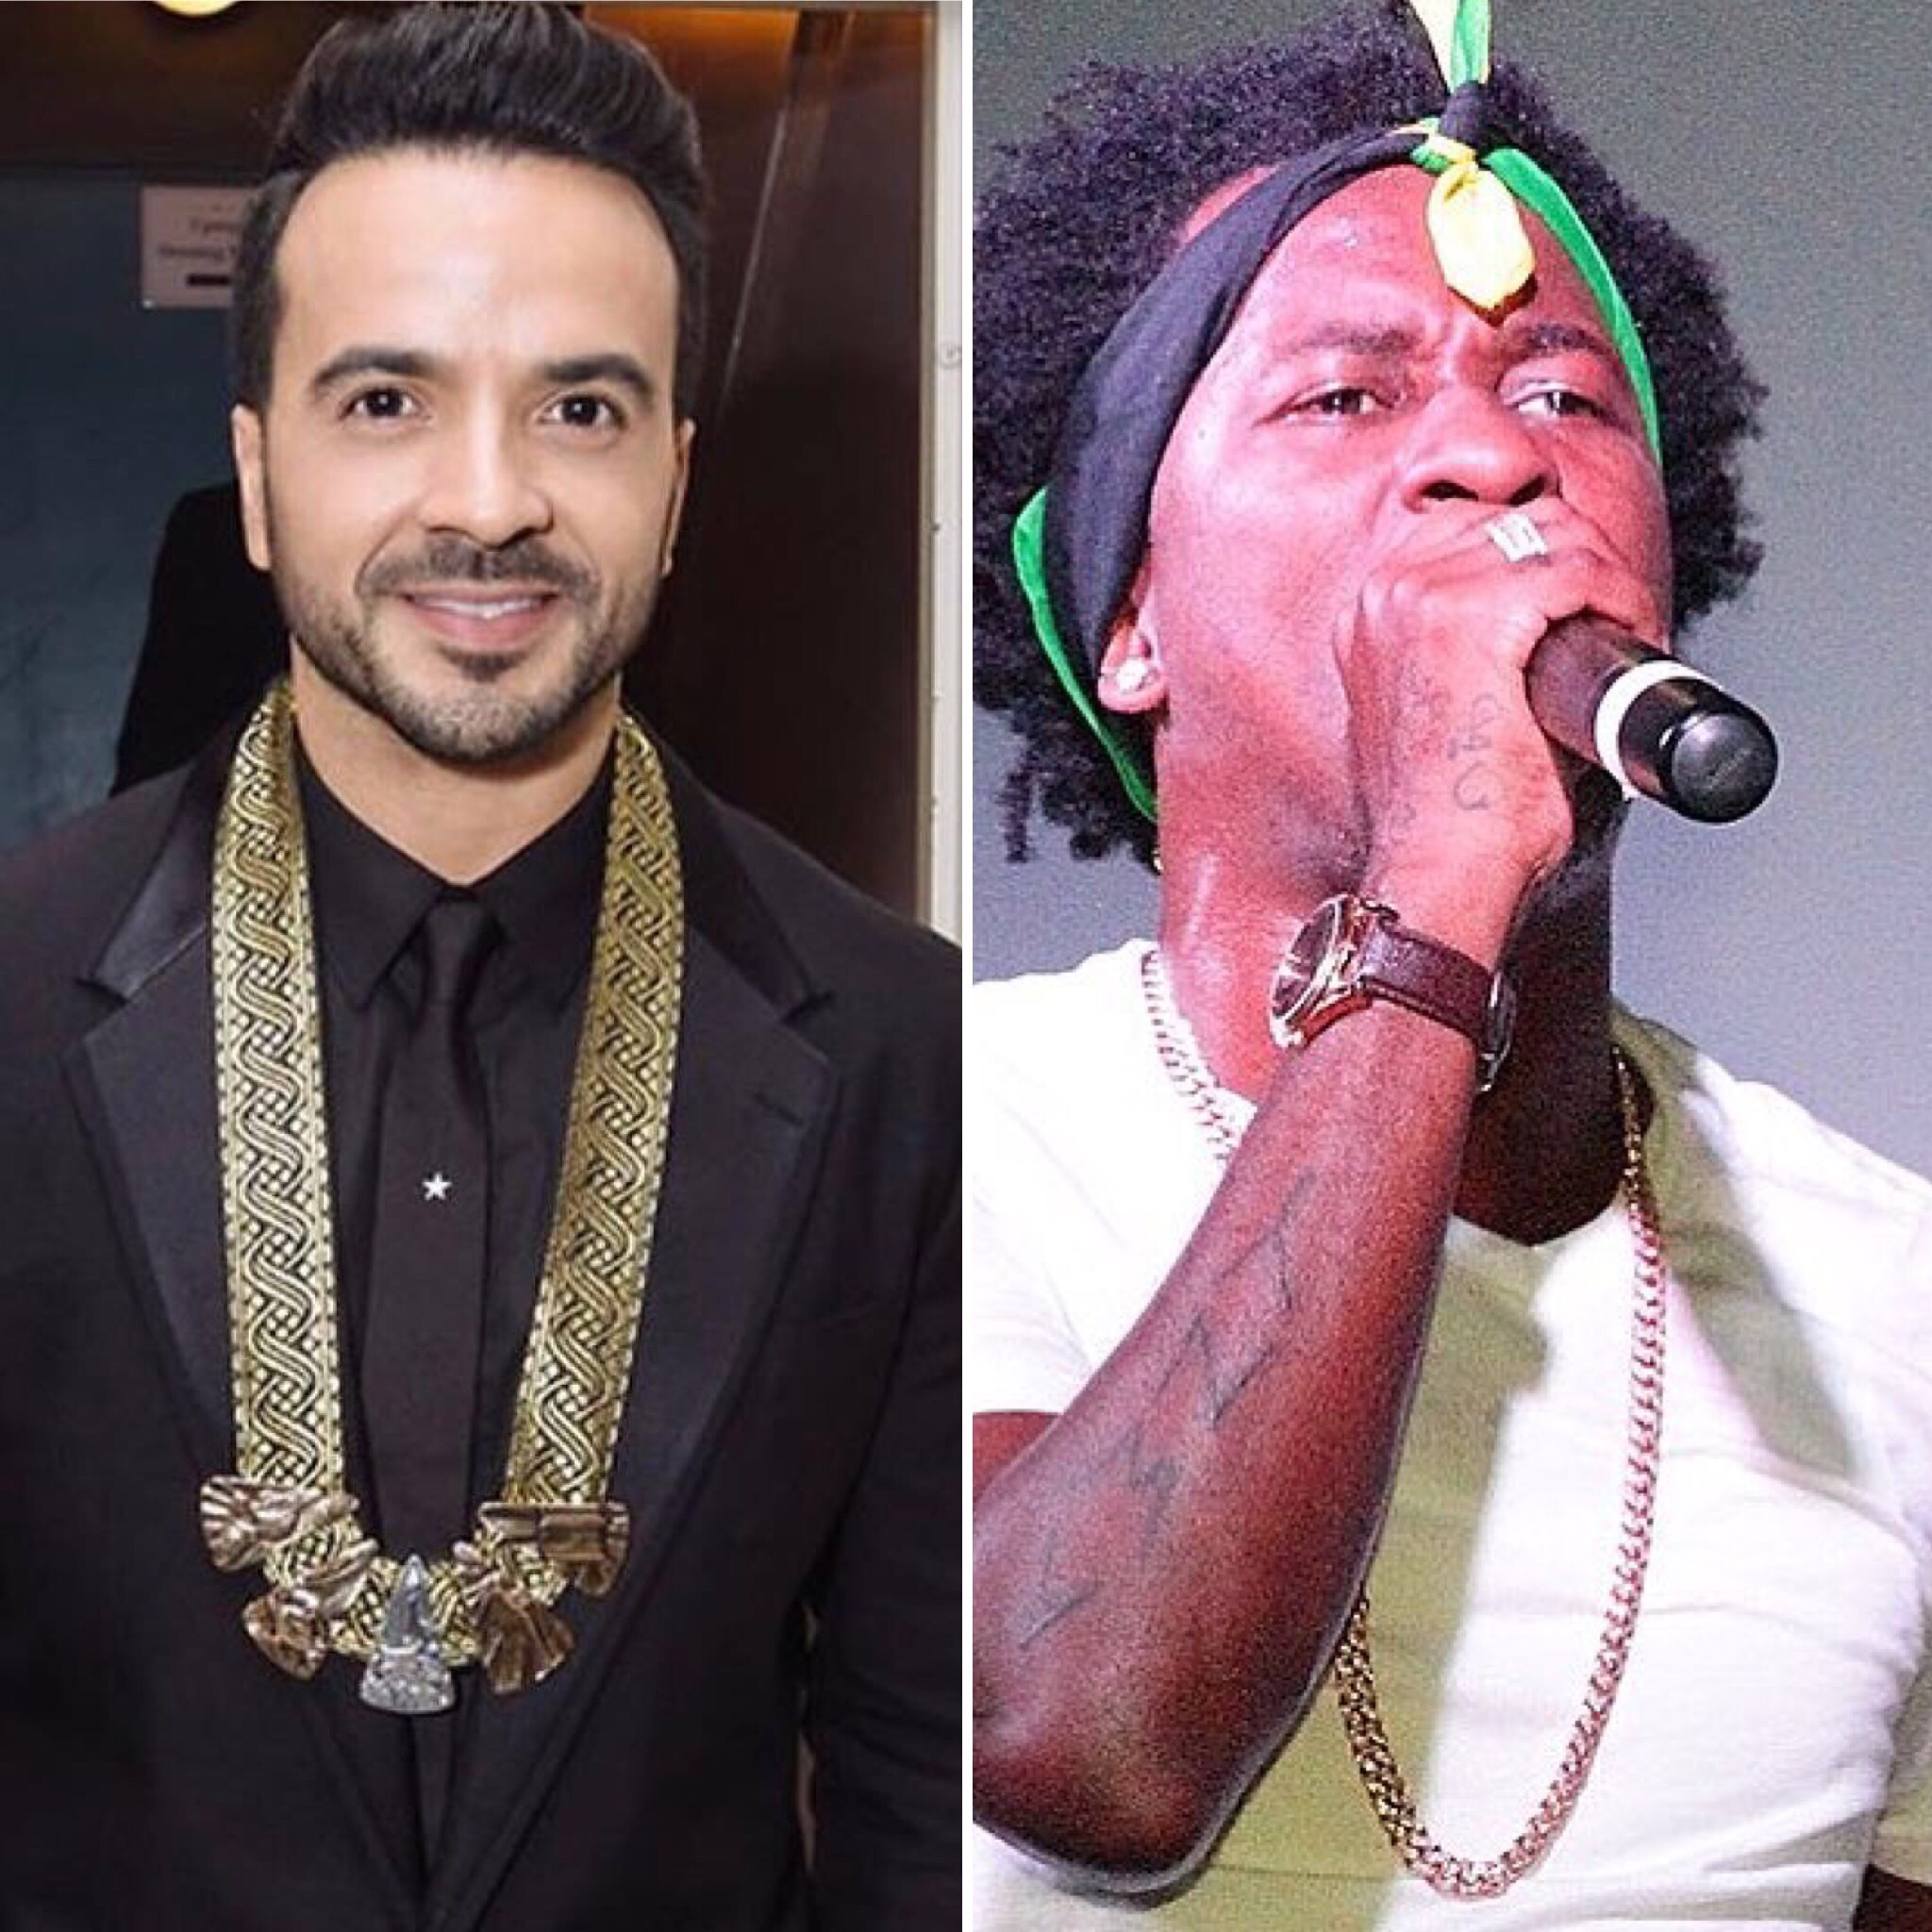 Charly Black Teams Up With 'Despacito' Singer Luis Fonsi For 'Party Animal' Remix